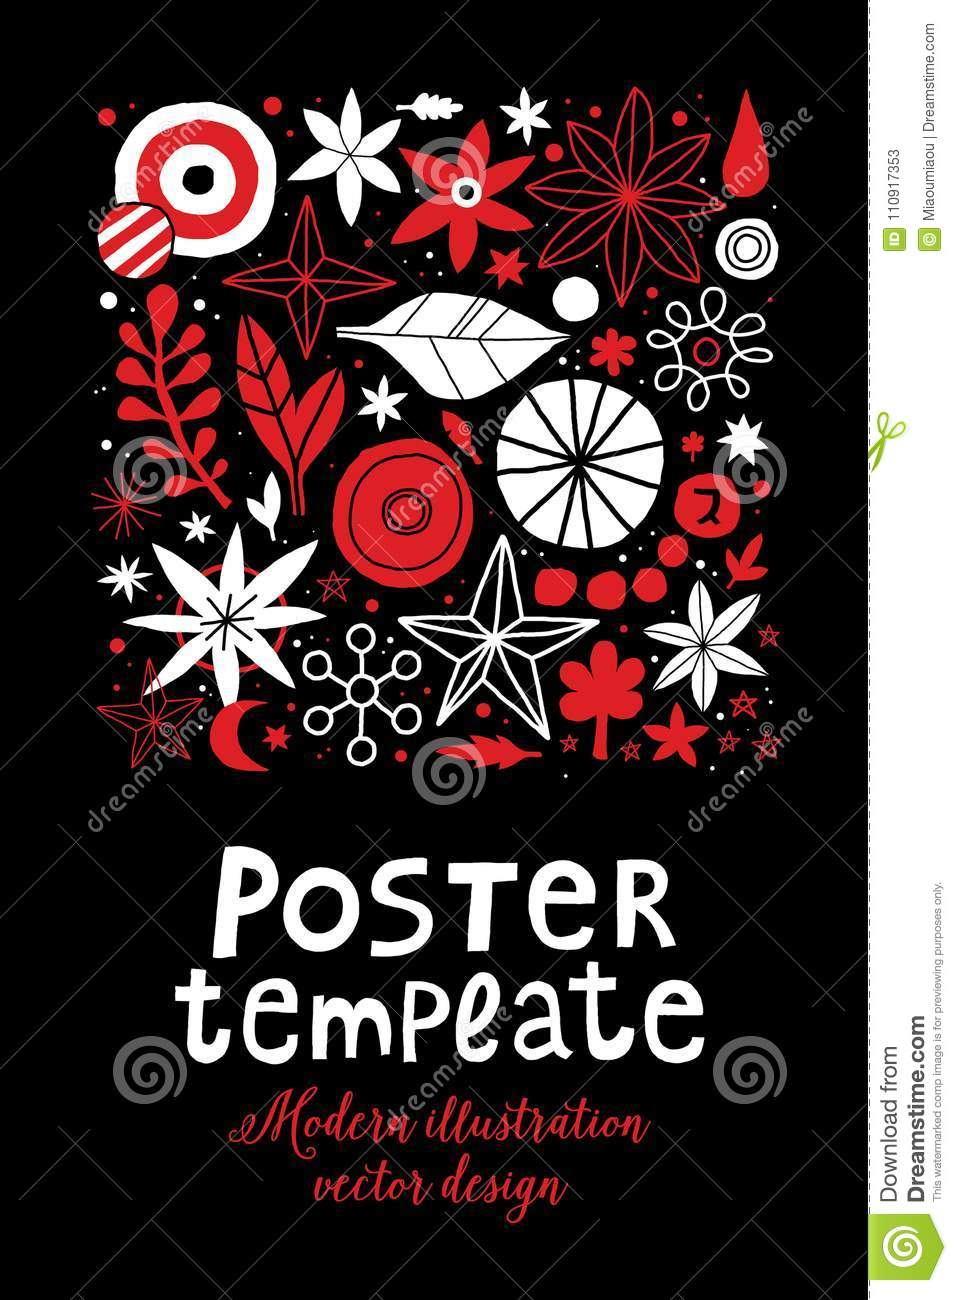 Creative Poster Template With Flowers And Abstract Hand Drawn Elements Can Be Used For Advertising Graphic Design Stock Vector Illustration Of Simple Bright 110917353,Wedding Henna Designs